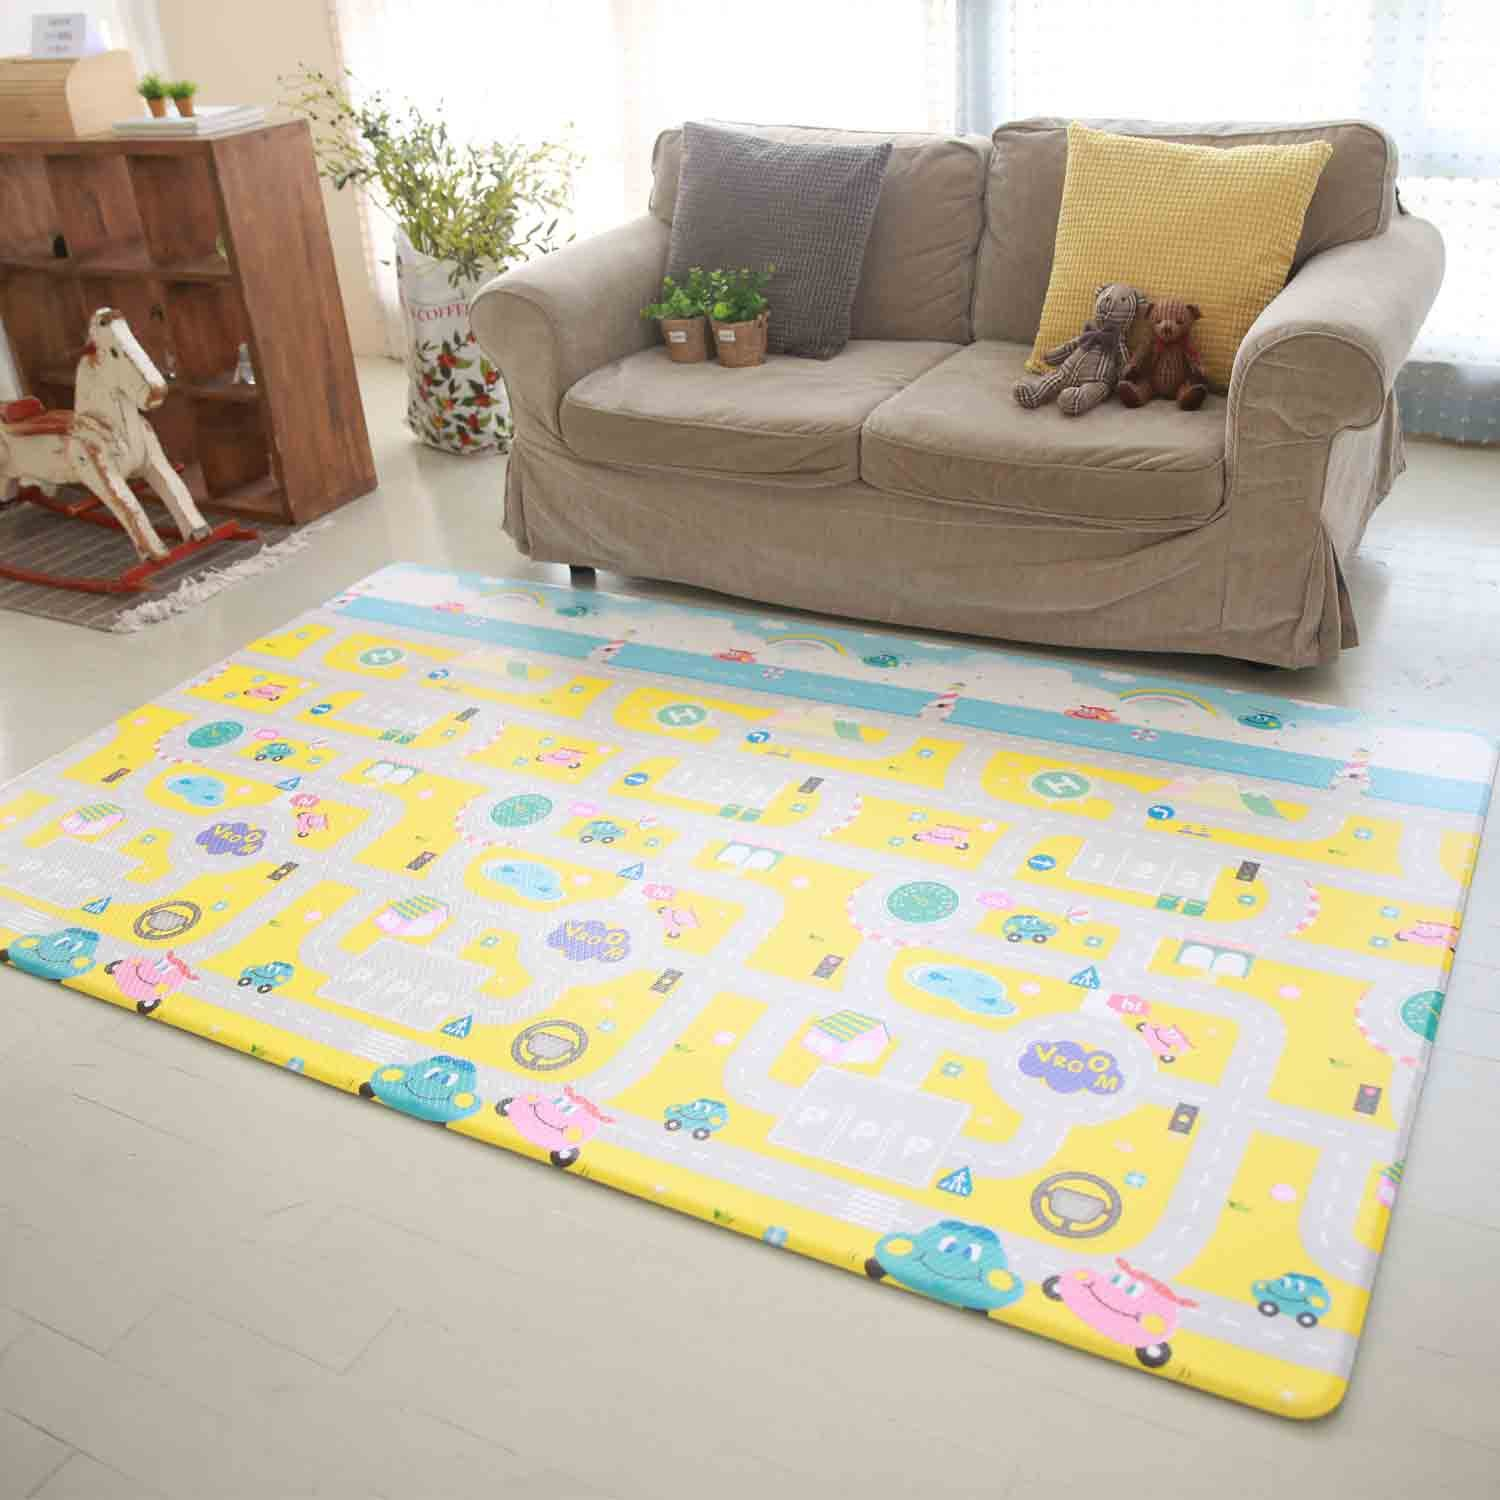 Get Quotations Baby Play Mat Cushion Stylish Floor Foam For Children Soft Gym Kids